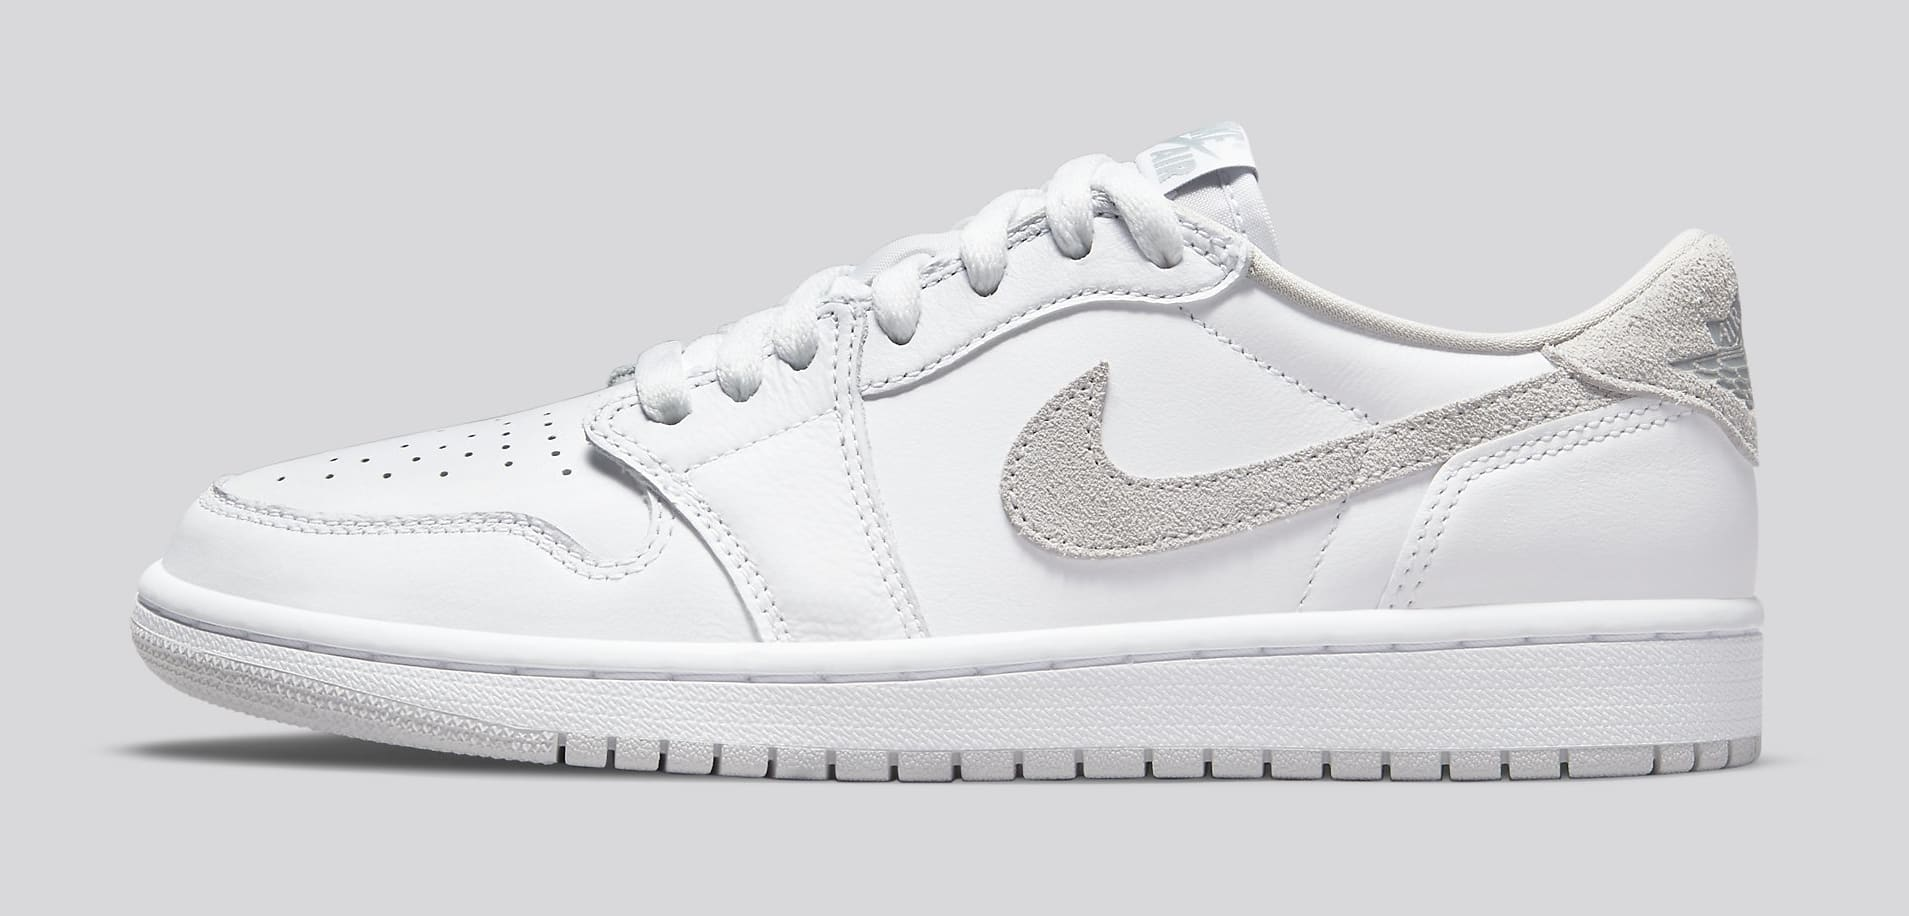 Air Jordan 1 Retro Low 'Neutral Grey' CZ0775-100 Lateral